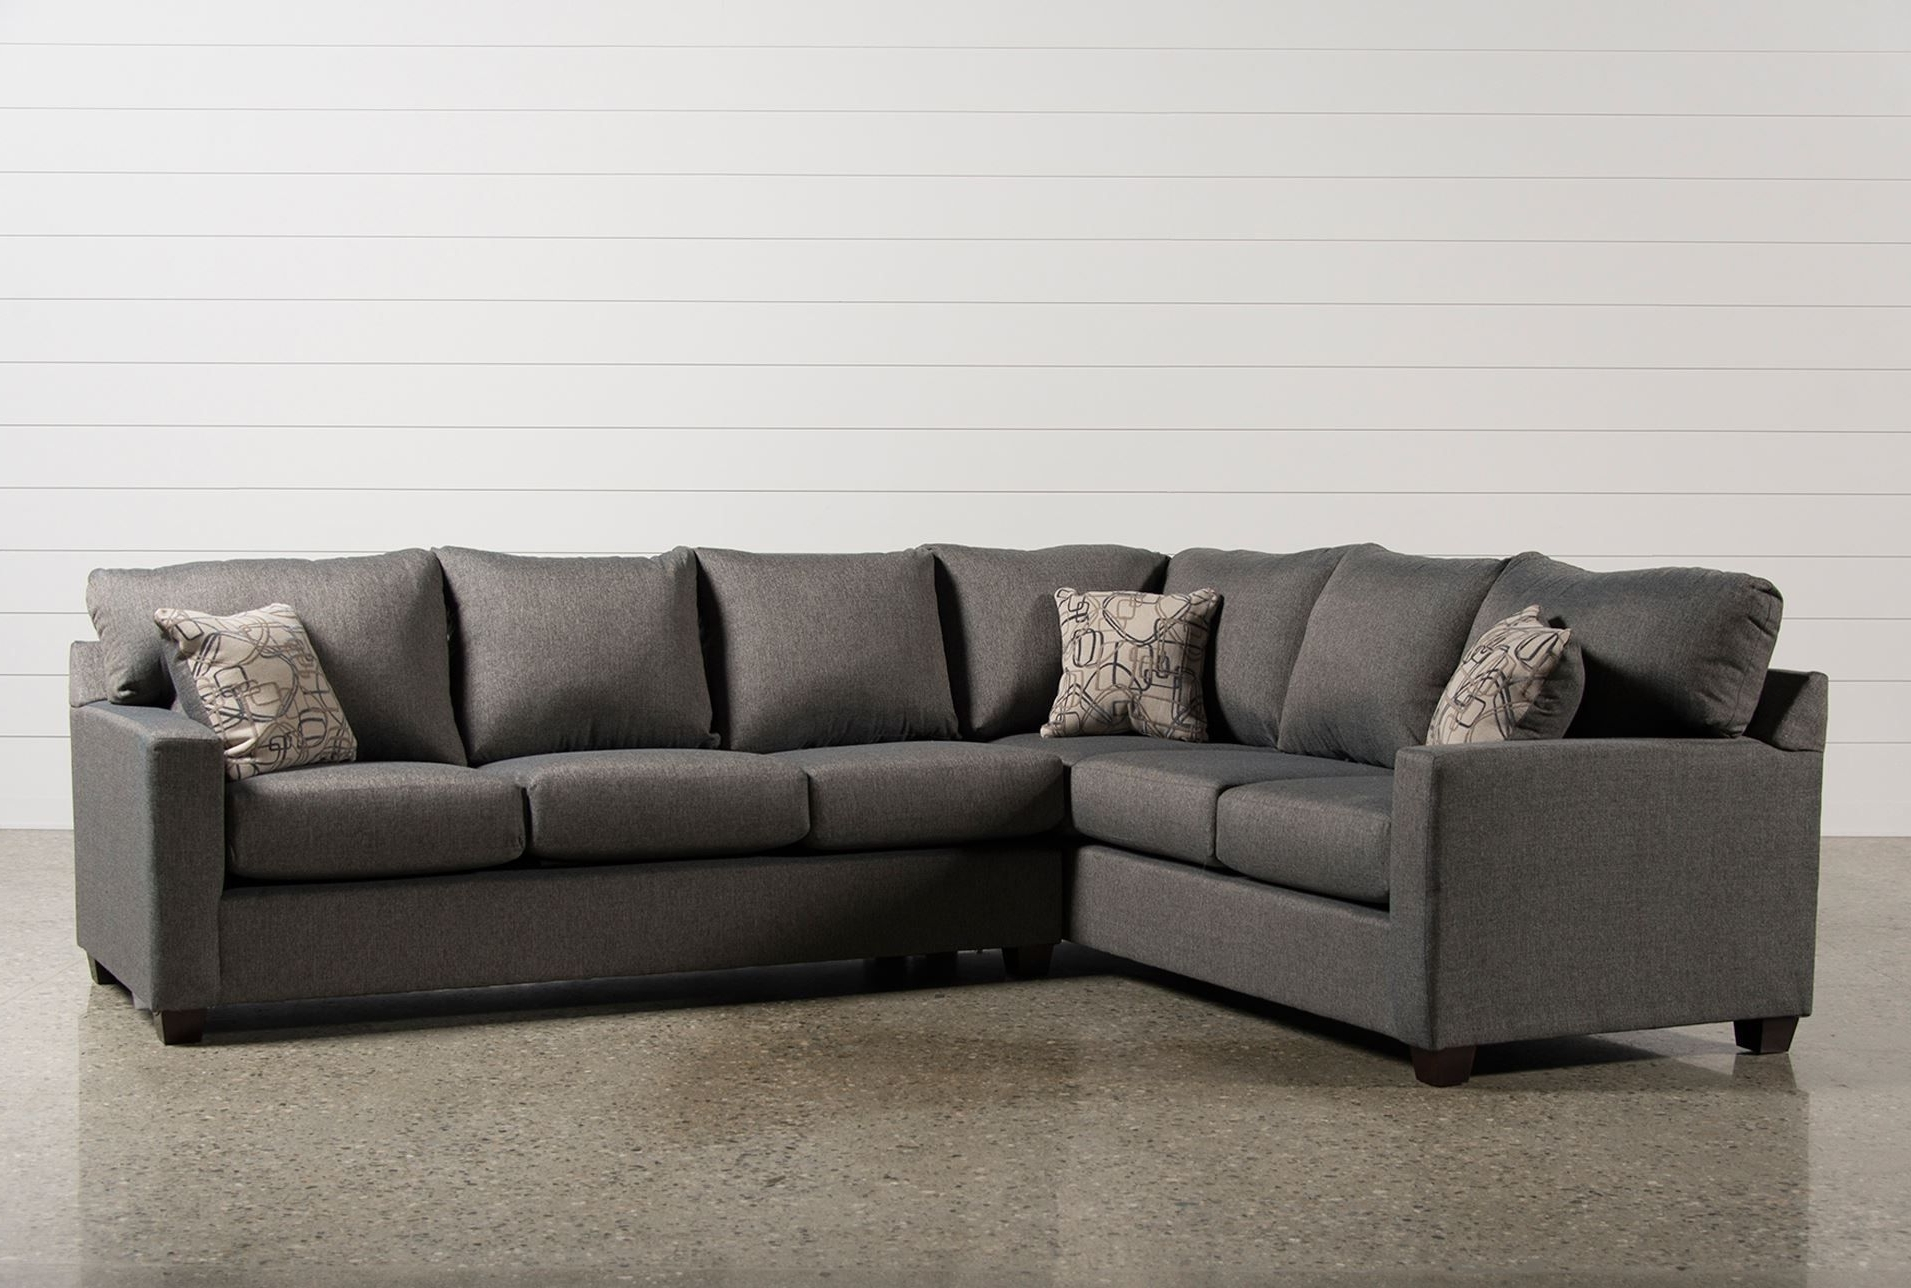 Projects To Throughout Well Known Living Spaces Sectional Sofas (View 14 of 15)